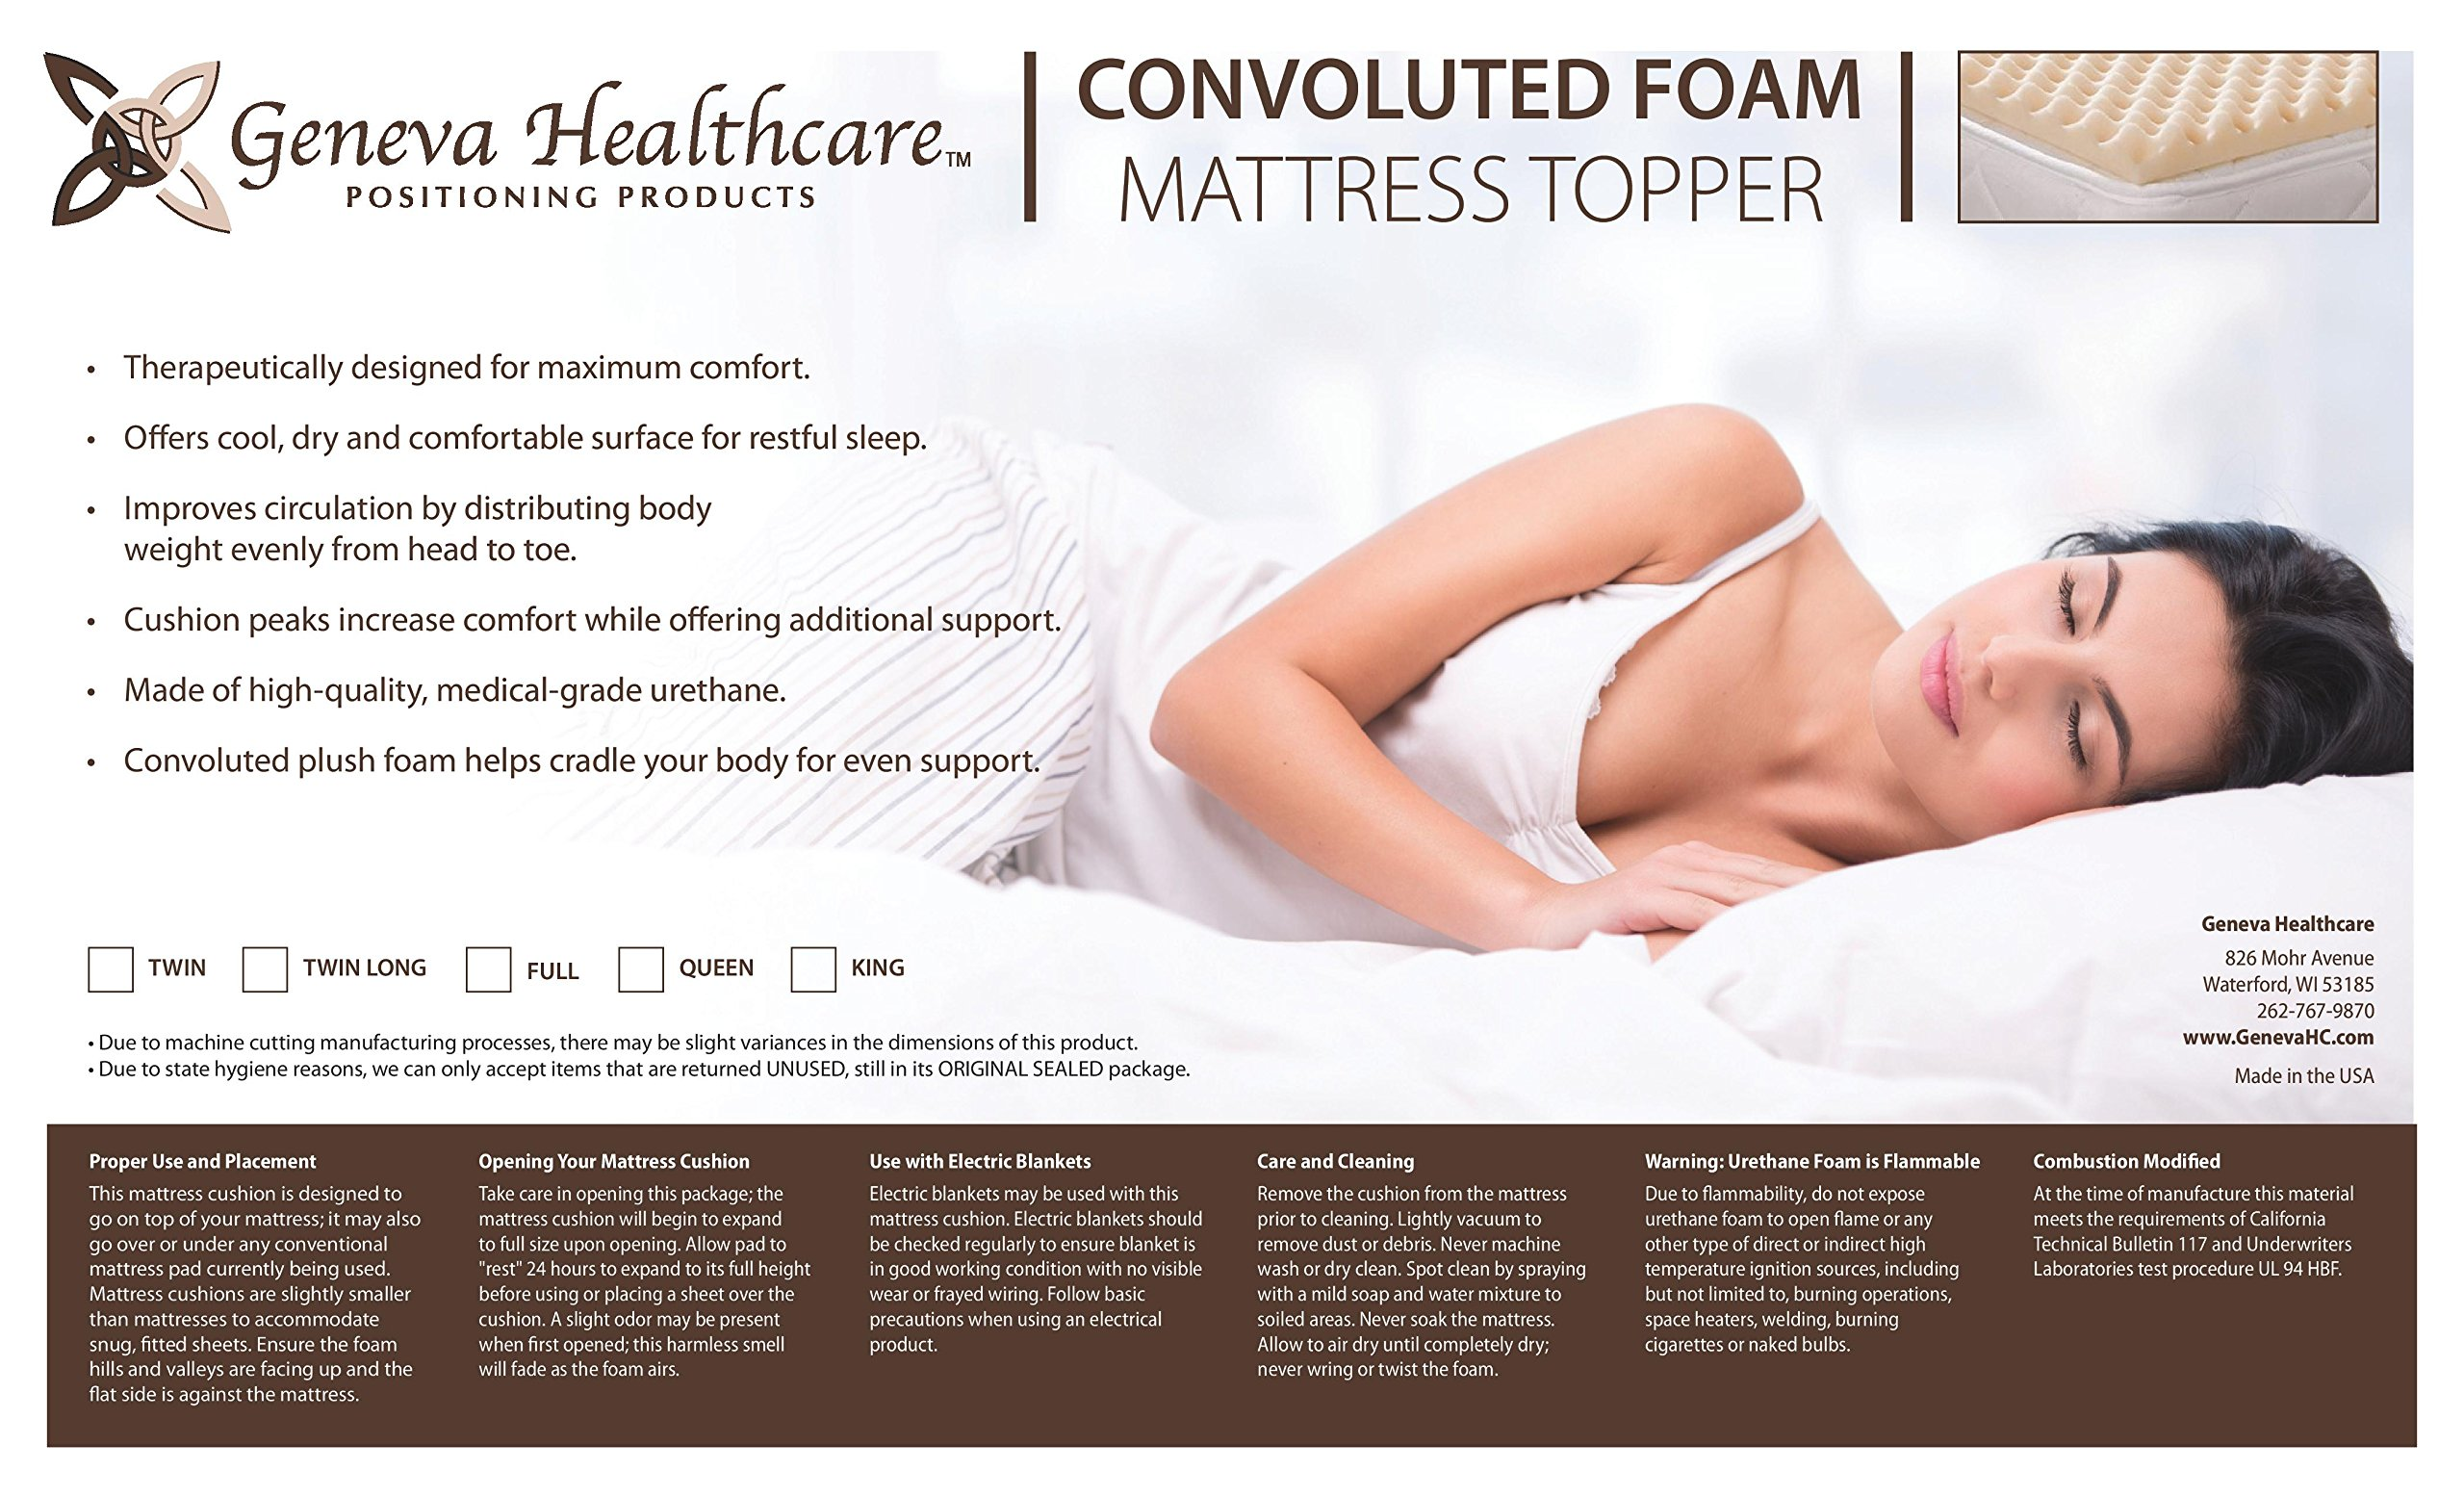 Geneva Healthcare Egg Crate Convoluted Foam Mattress Pad 3'' Topper - 3'' x 50'' x 72''